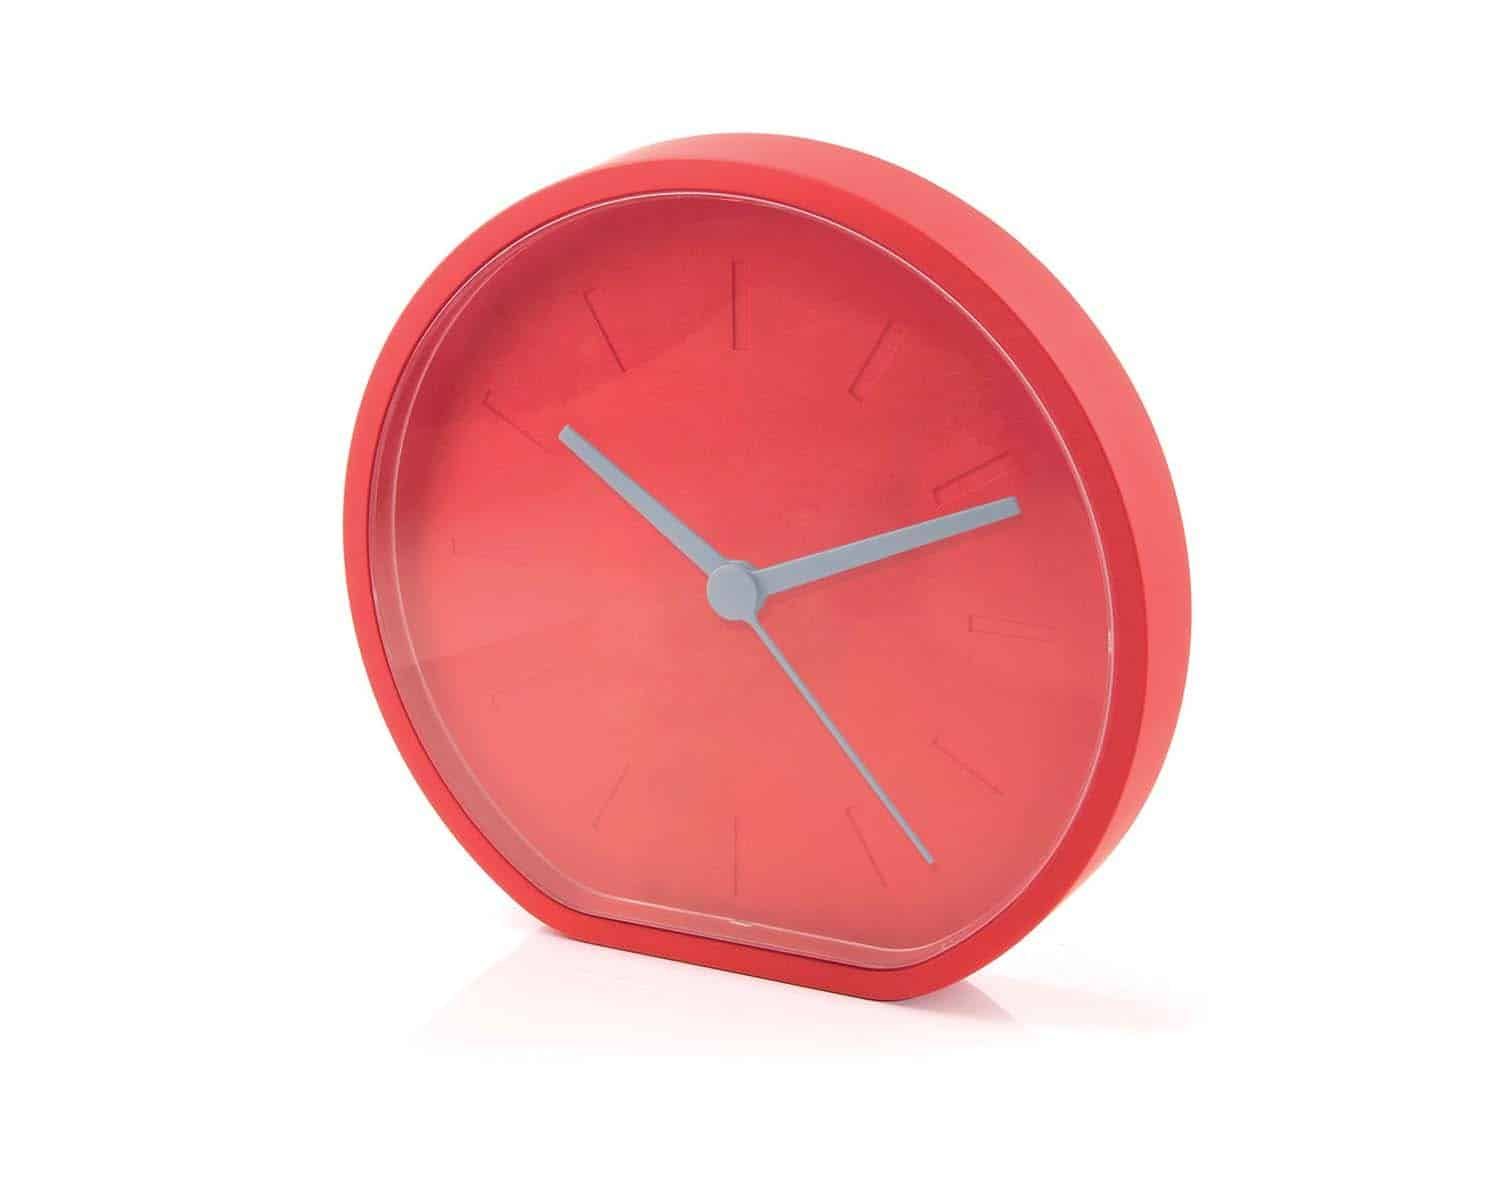 Lexon LR122G Beside Analogue Clock Designer Wall Clock Red